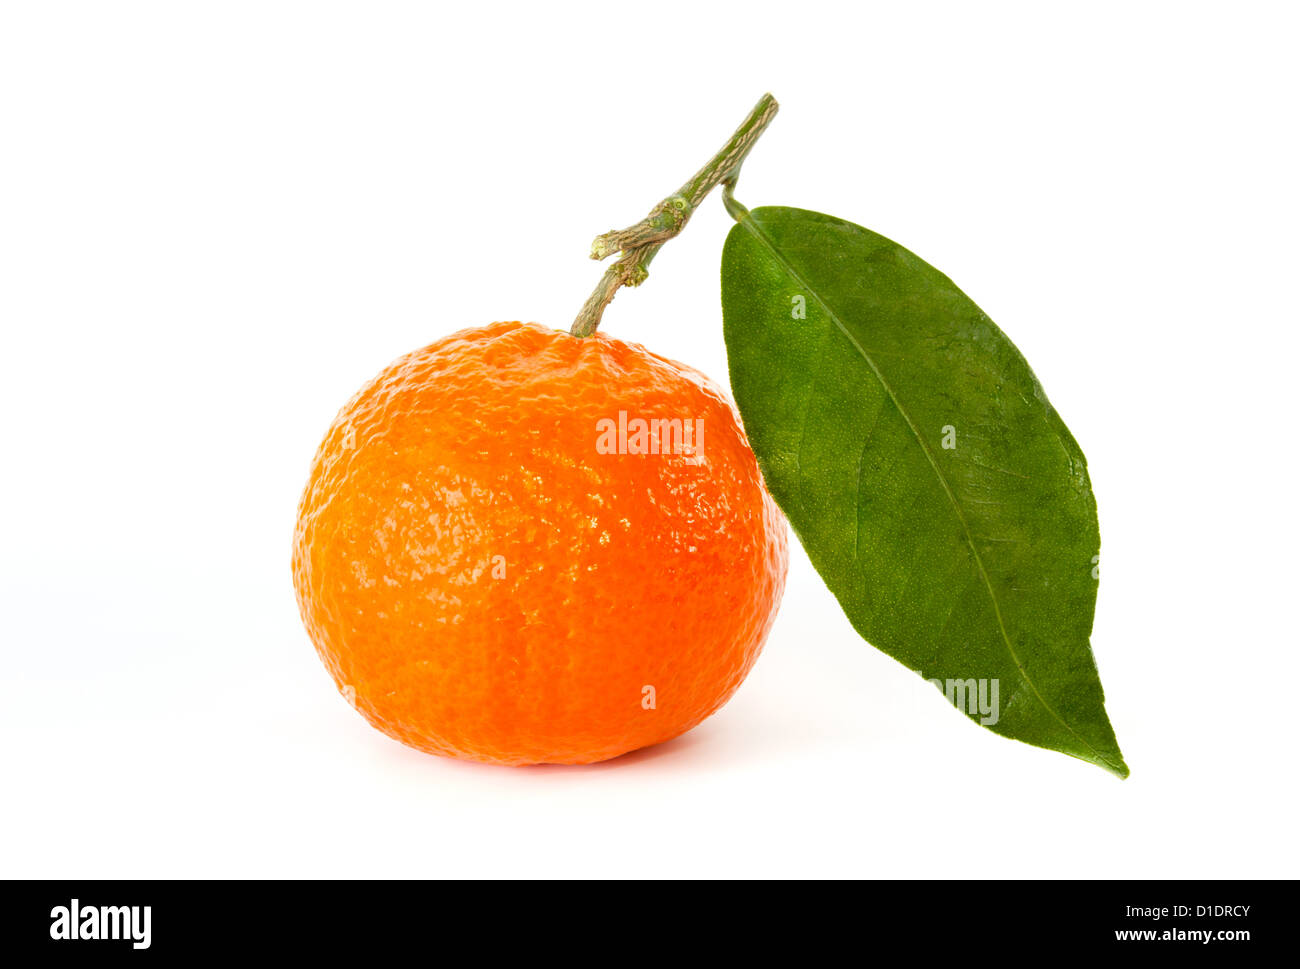 Tangerine with stem and leaf against a white background - Stock Image